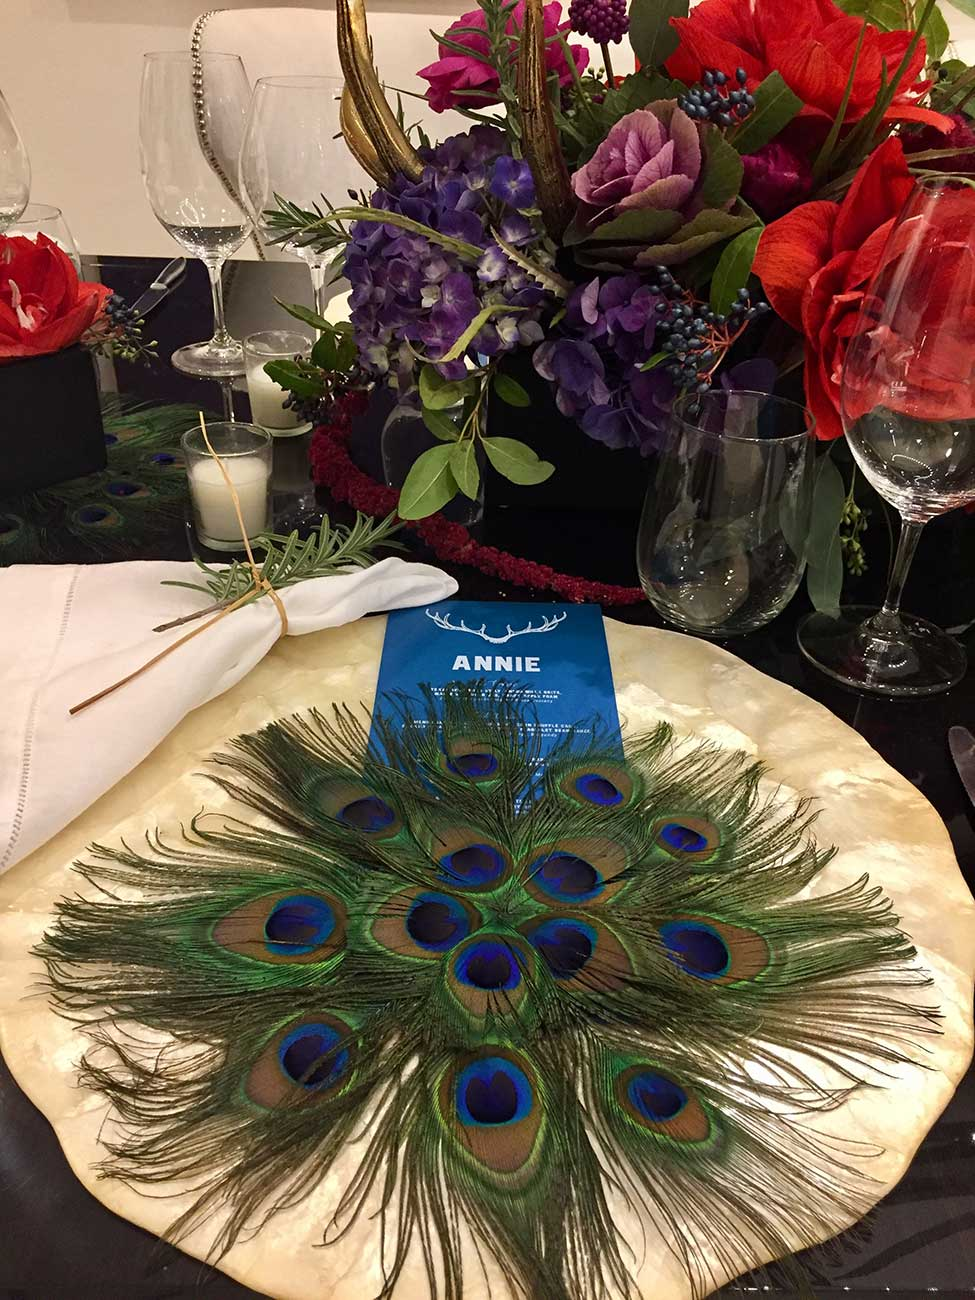 Naples Wine Festival donation dinner tabletop design of peacock feathers in a circle over a plate and menu card